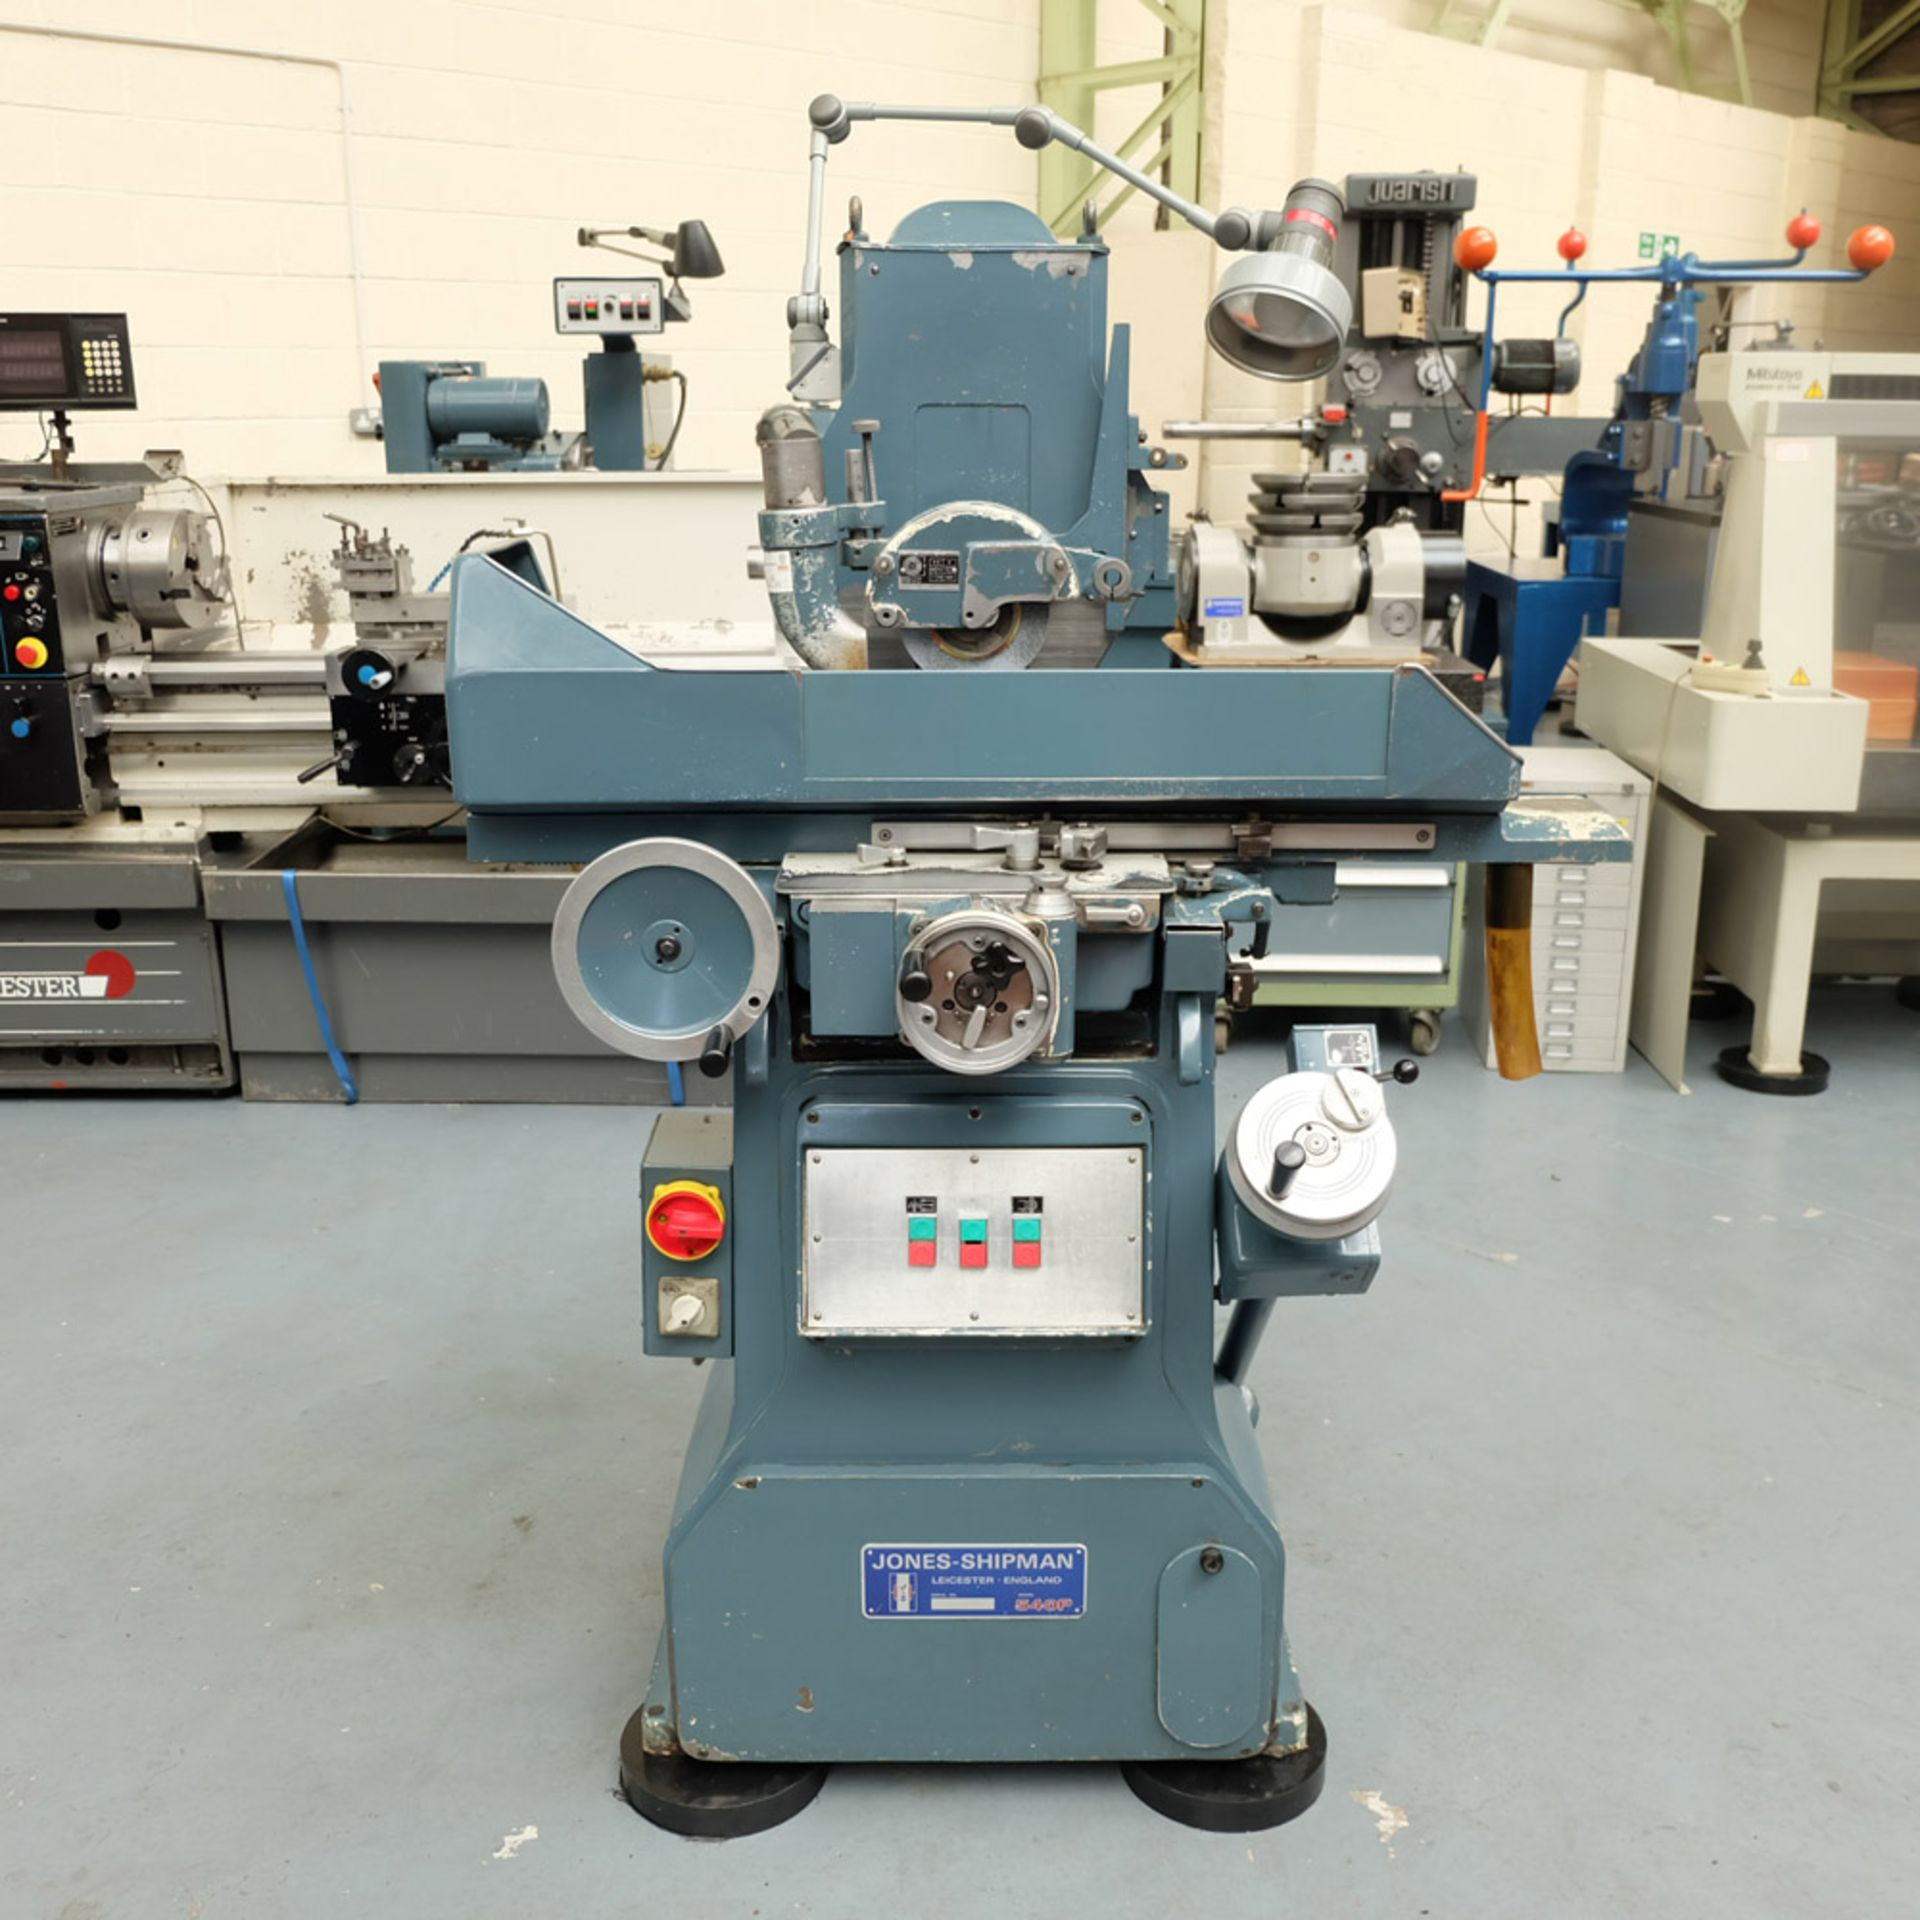 "Jones & Shipman Type 540P Tool Room Surface Grinder. Capacity 18"" x 6"". Imperial Dials."